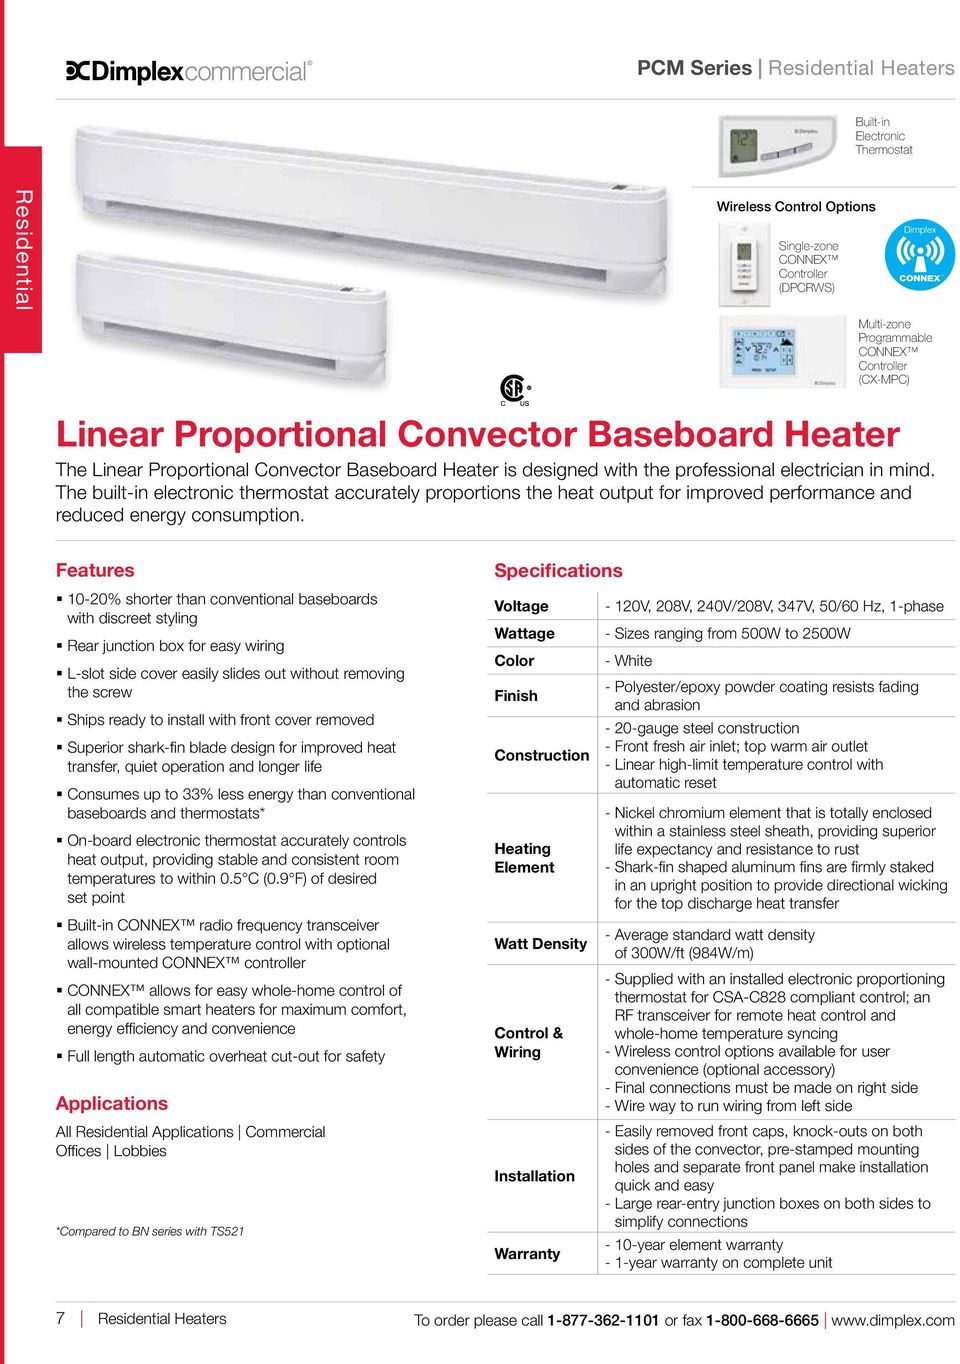 Electric Heating Products Residential Commercial I Ndustr Ial Pdf 2500w Phase Control The Built In Electronic Thermostat Accurately Proportions Heat Output For Improved Performance And Reduced